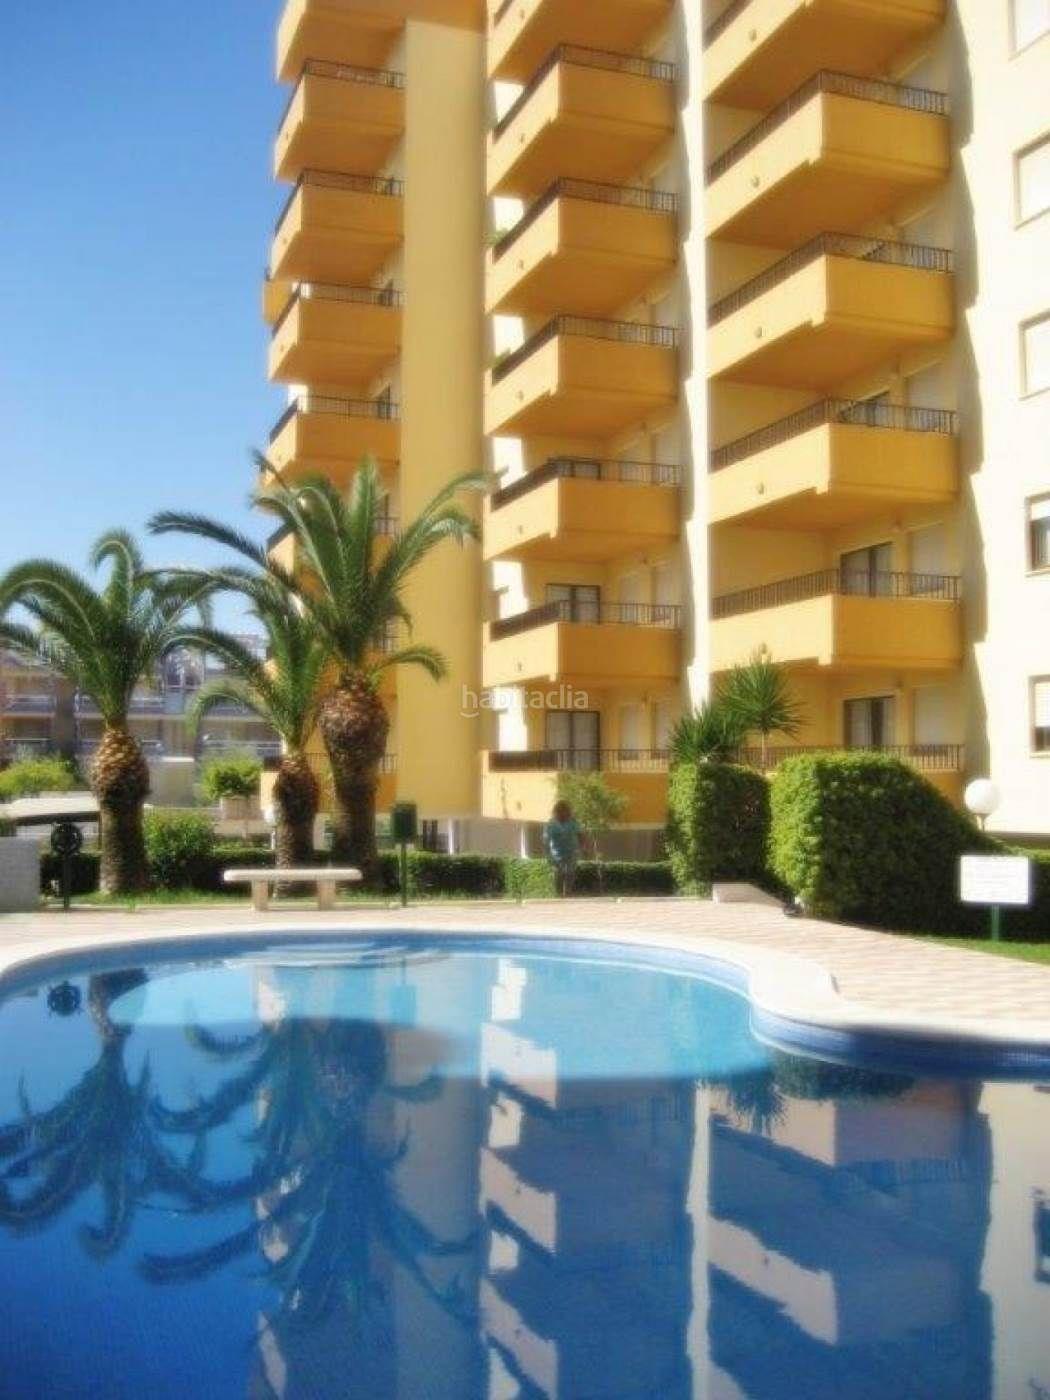 Rent Apartment in Xeraco. Apartamentos tamaris - playa de xeraco 6/7 pax